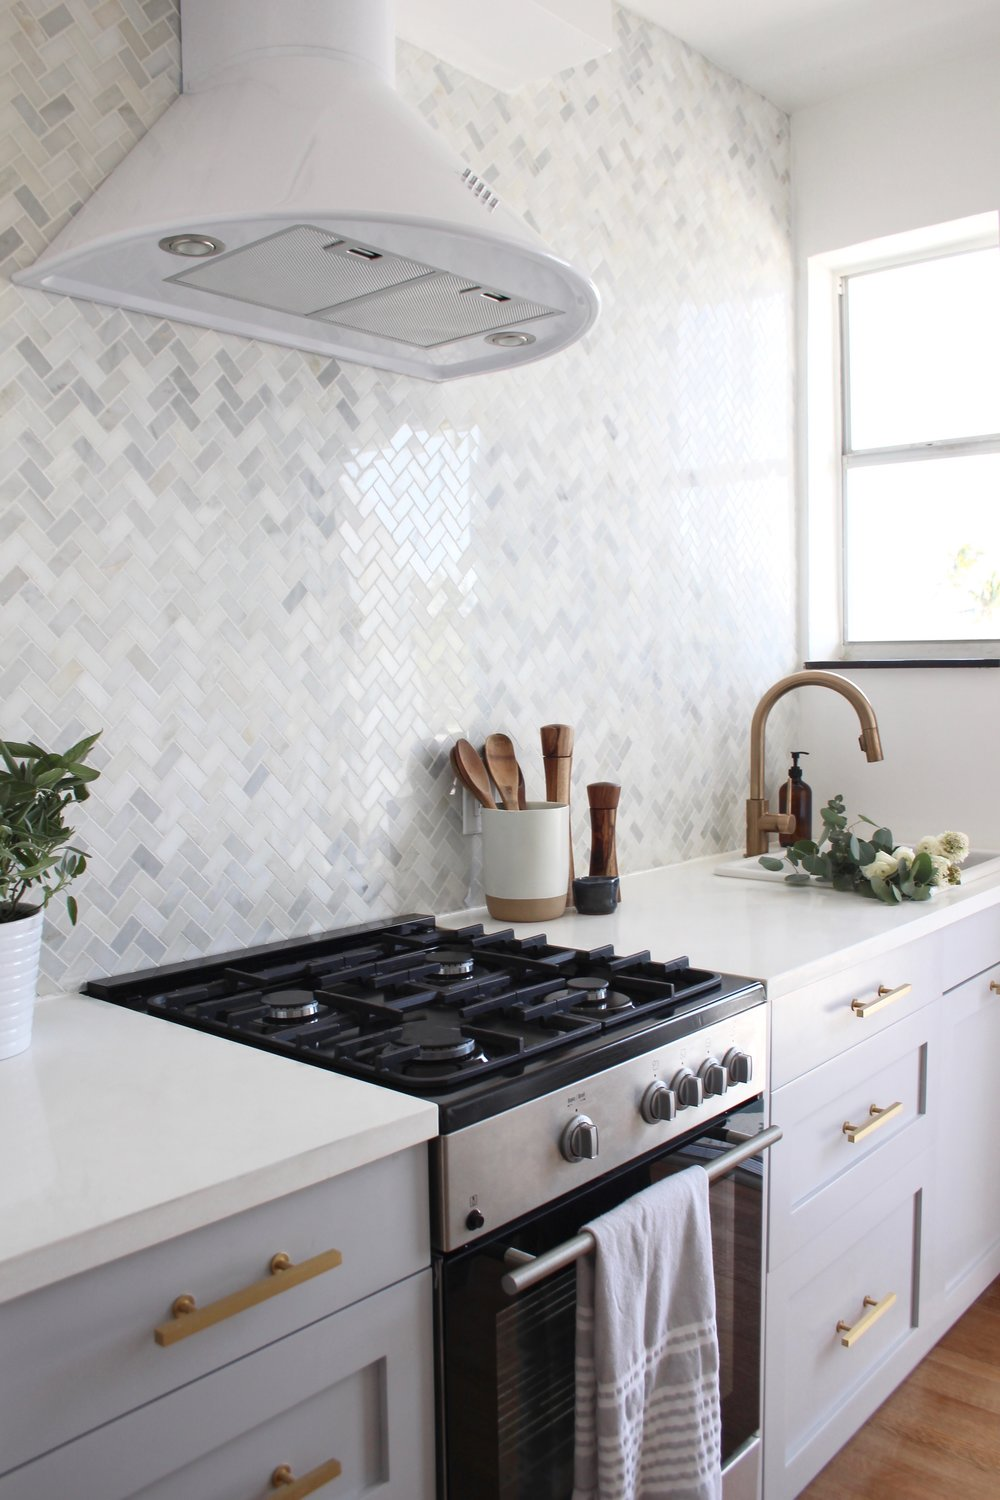 grey kitchen with marble backsplash - the habitat collective - project deco by the docks.jpg